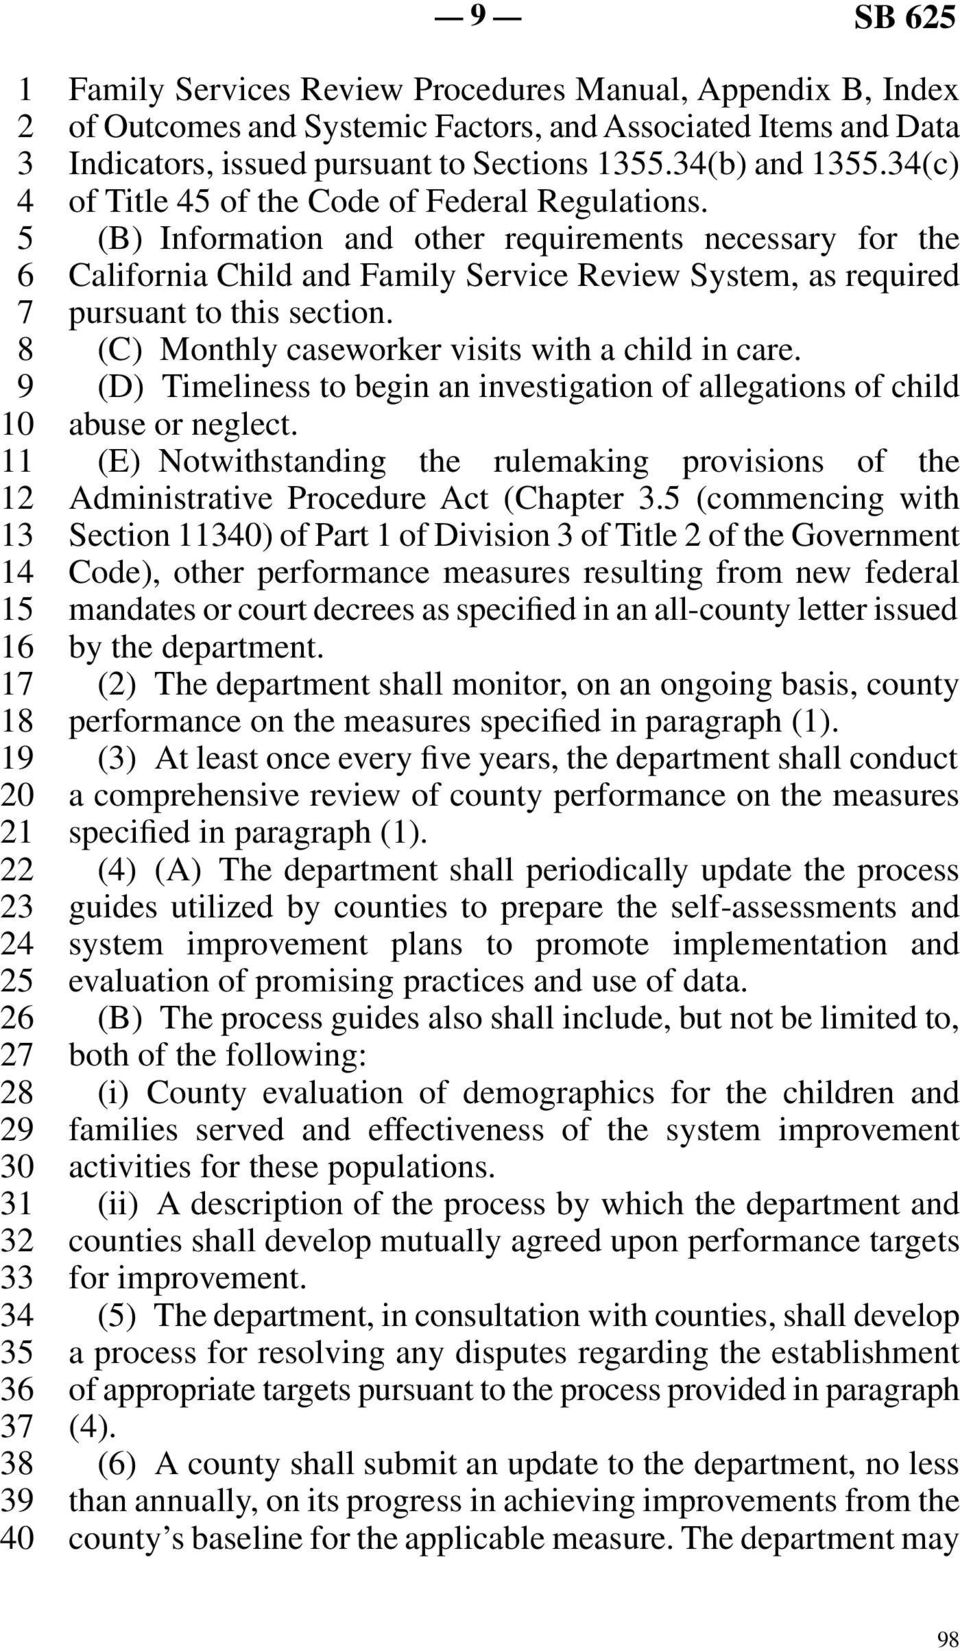 line 5 (B) Information and other requirements necessary for the line 6 California Child and Family Service Review System, as required line 7 pursuant to this section.